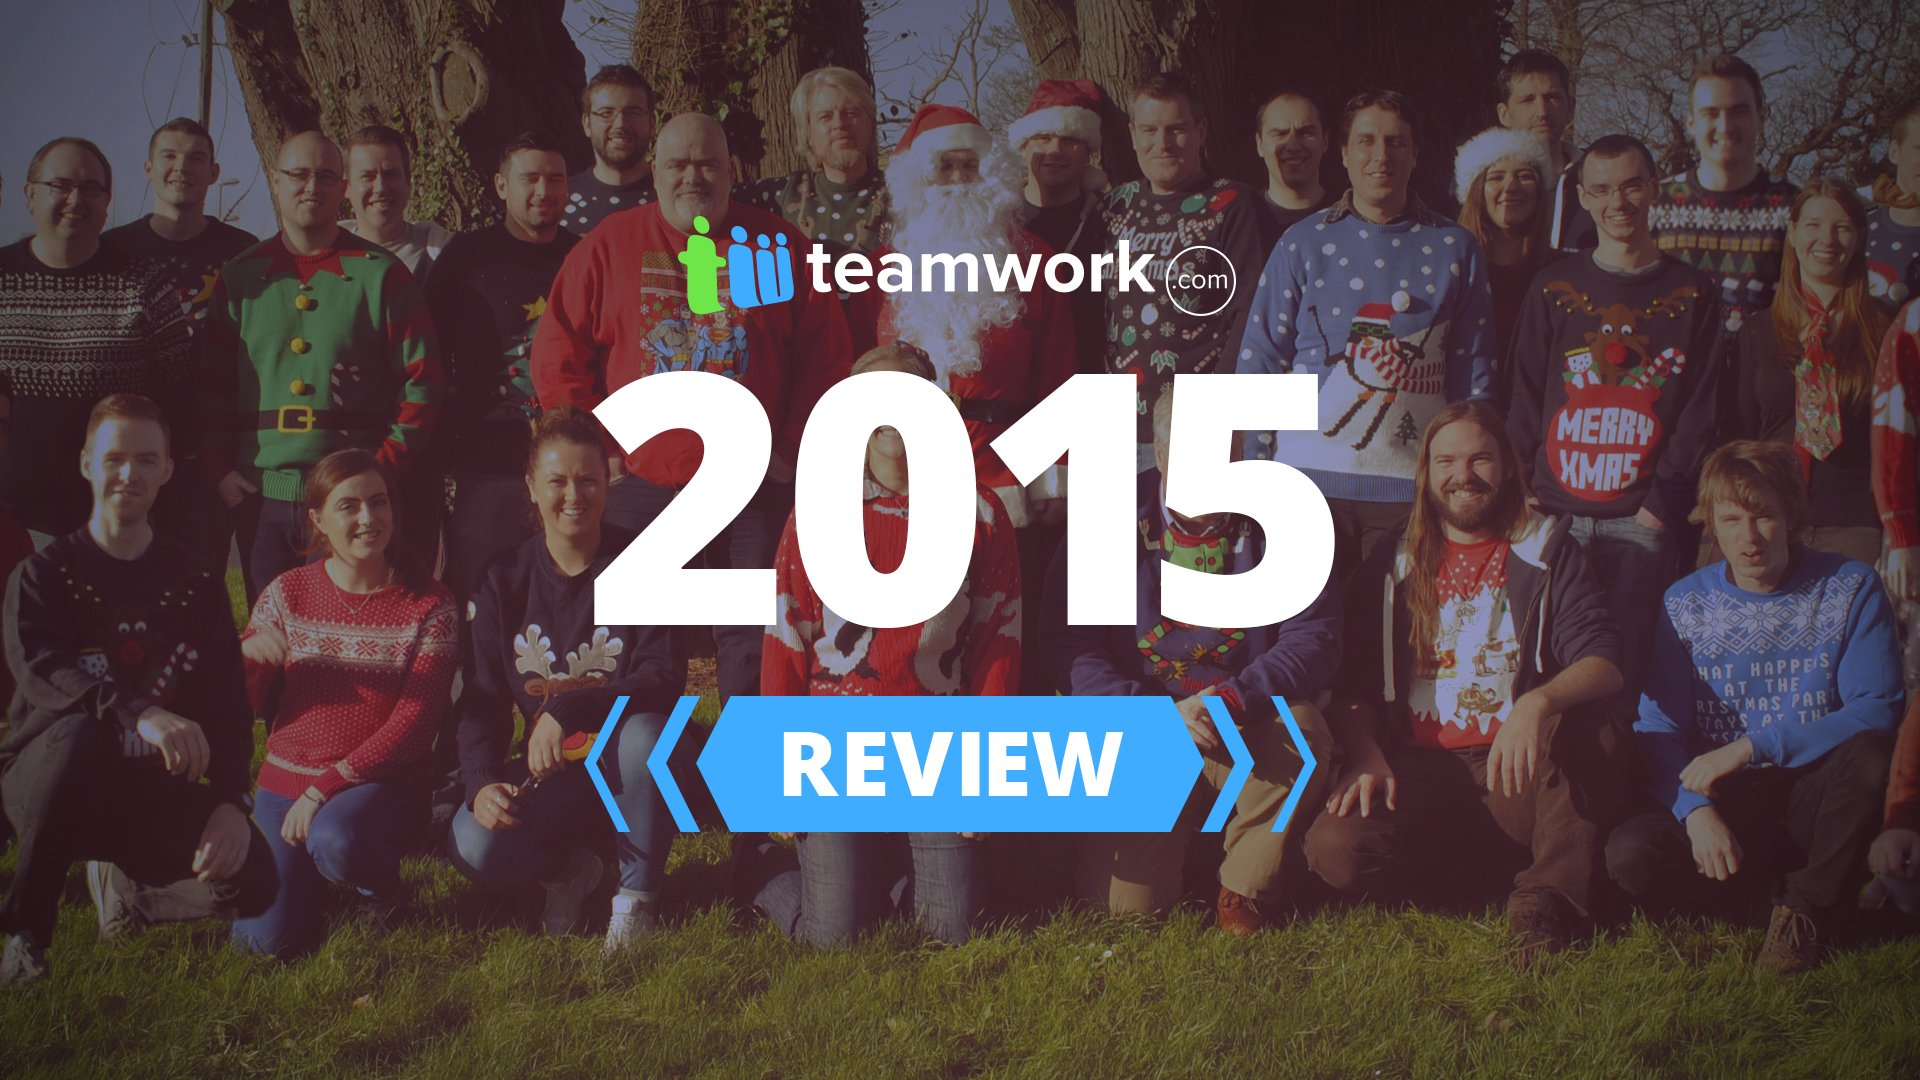 """Team photo with text overlay """"Teamwork.com 2015 Year in Review"""""""